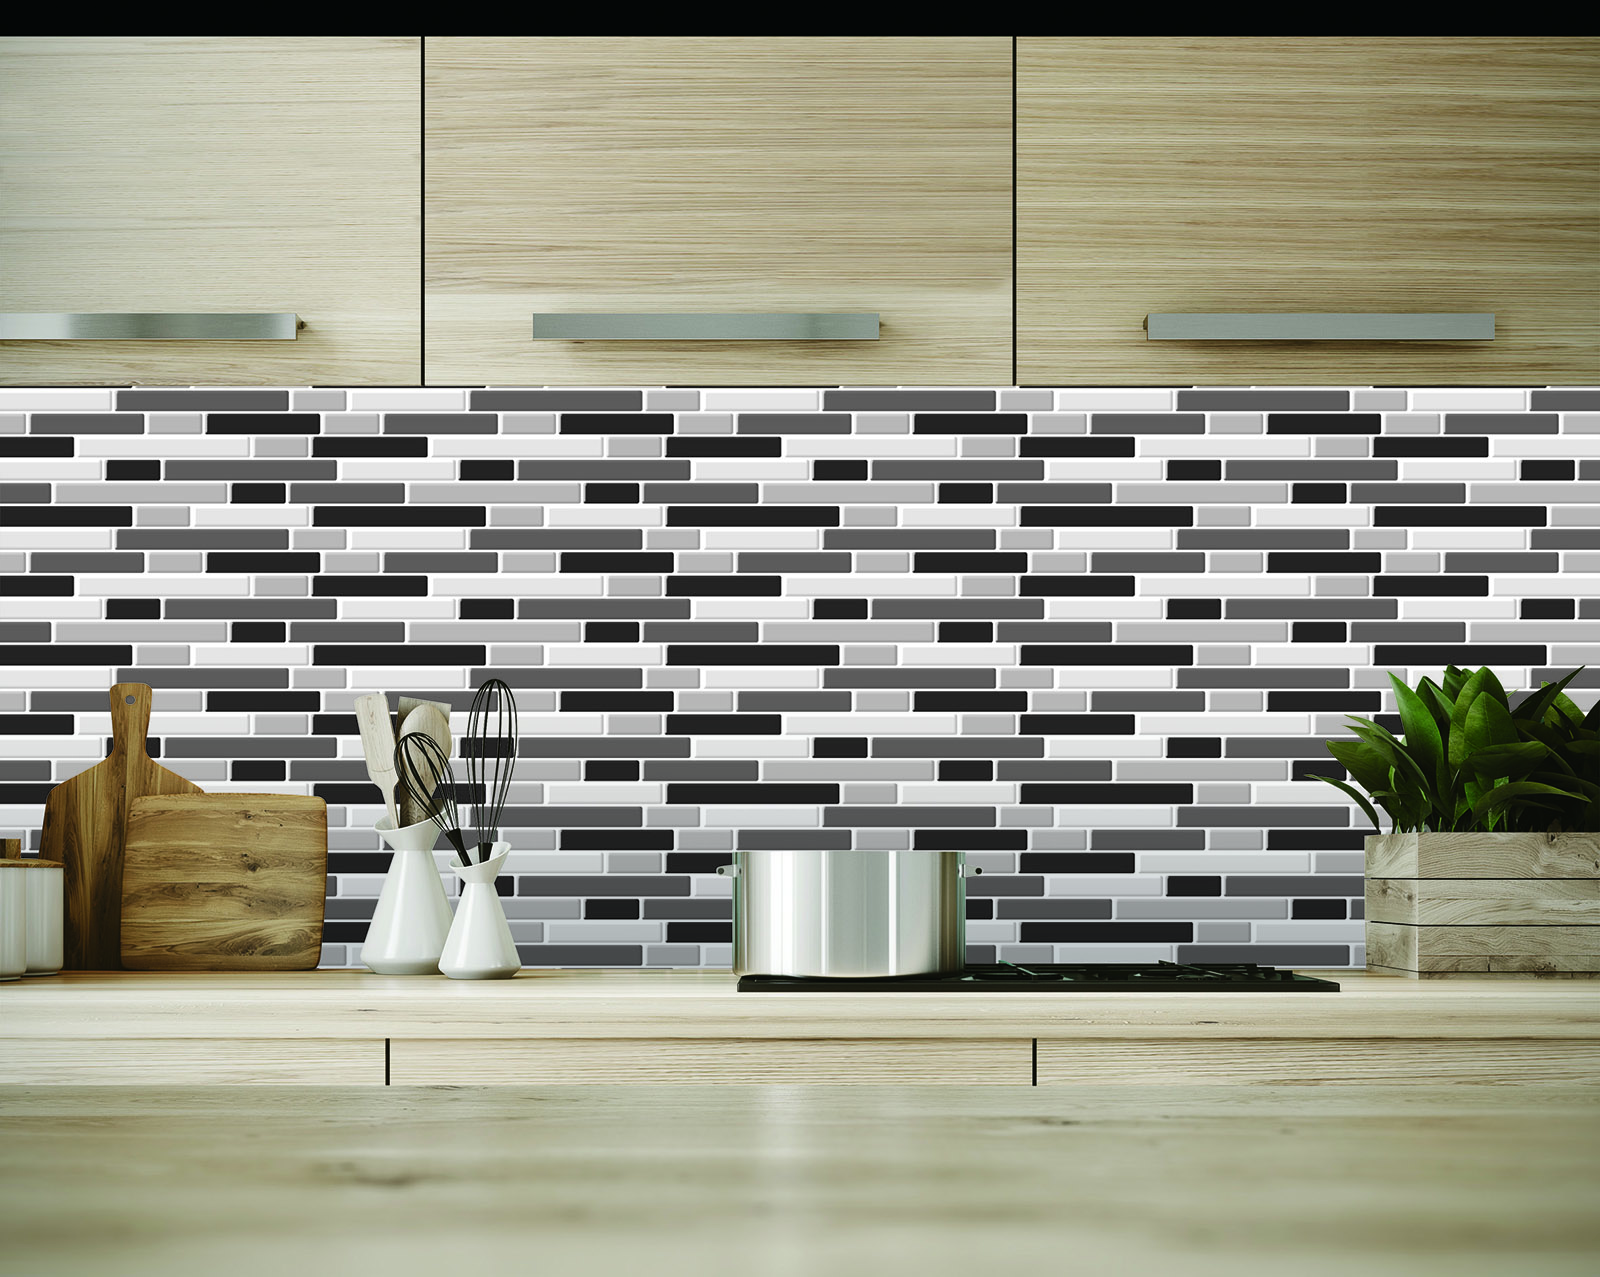 - 10-Sheets Peel And Stick Backsplash Tile, 3D Self-Adhesive Tile